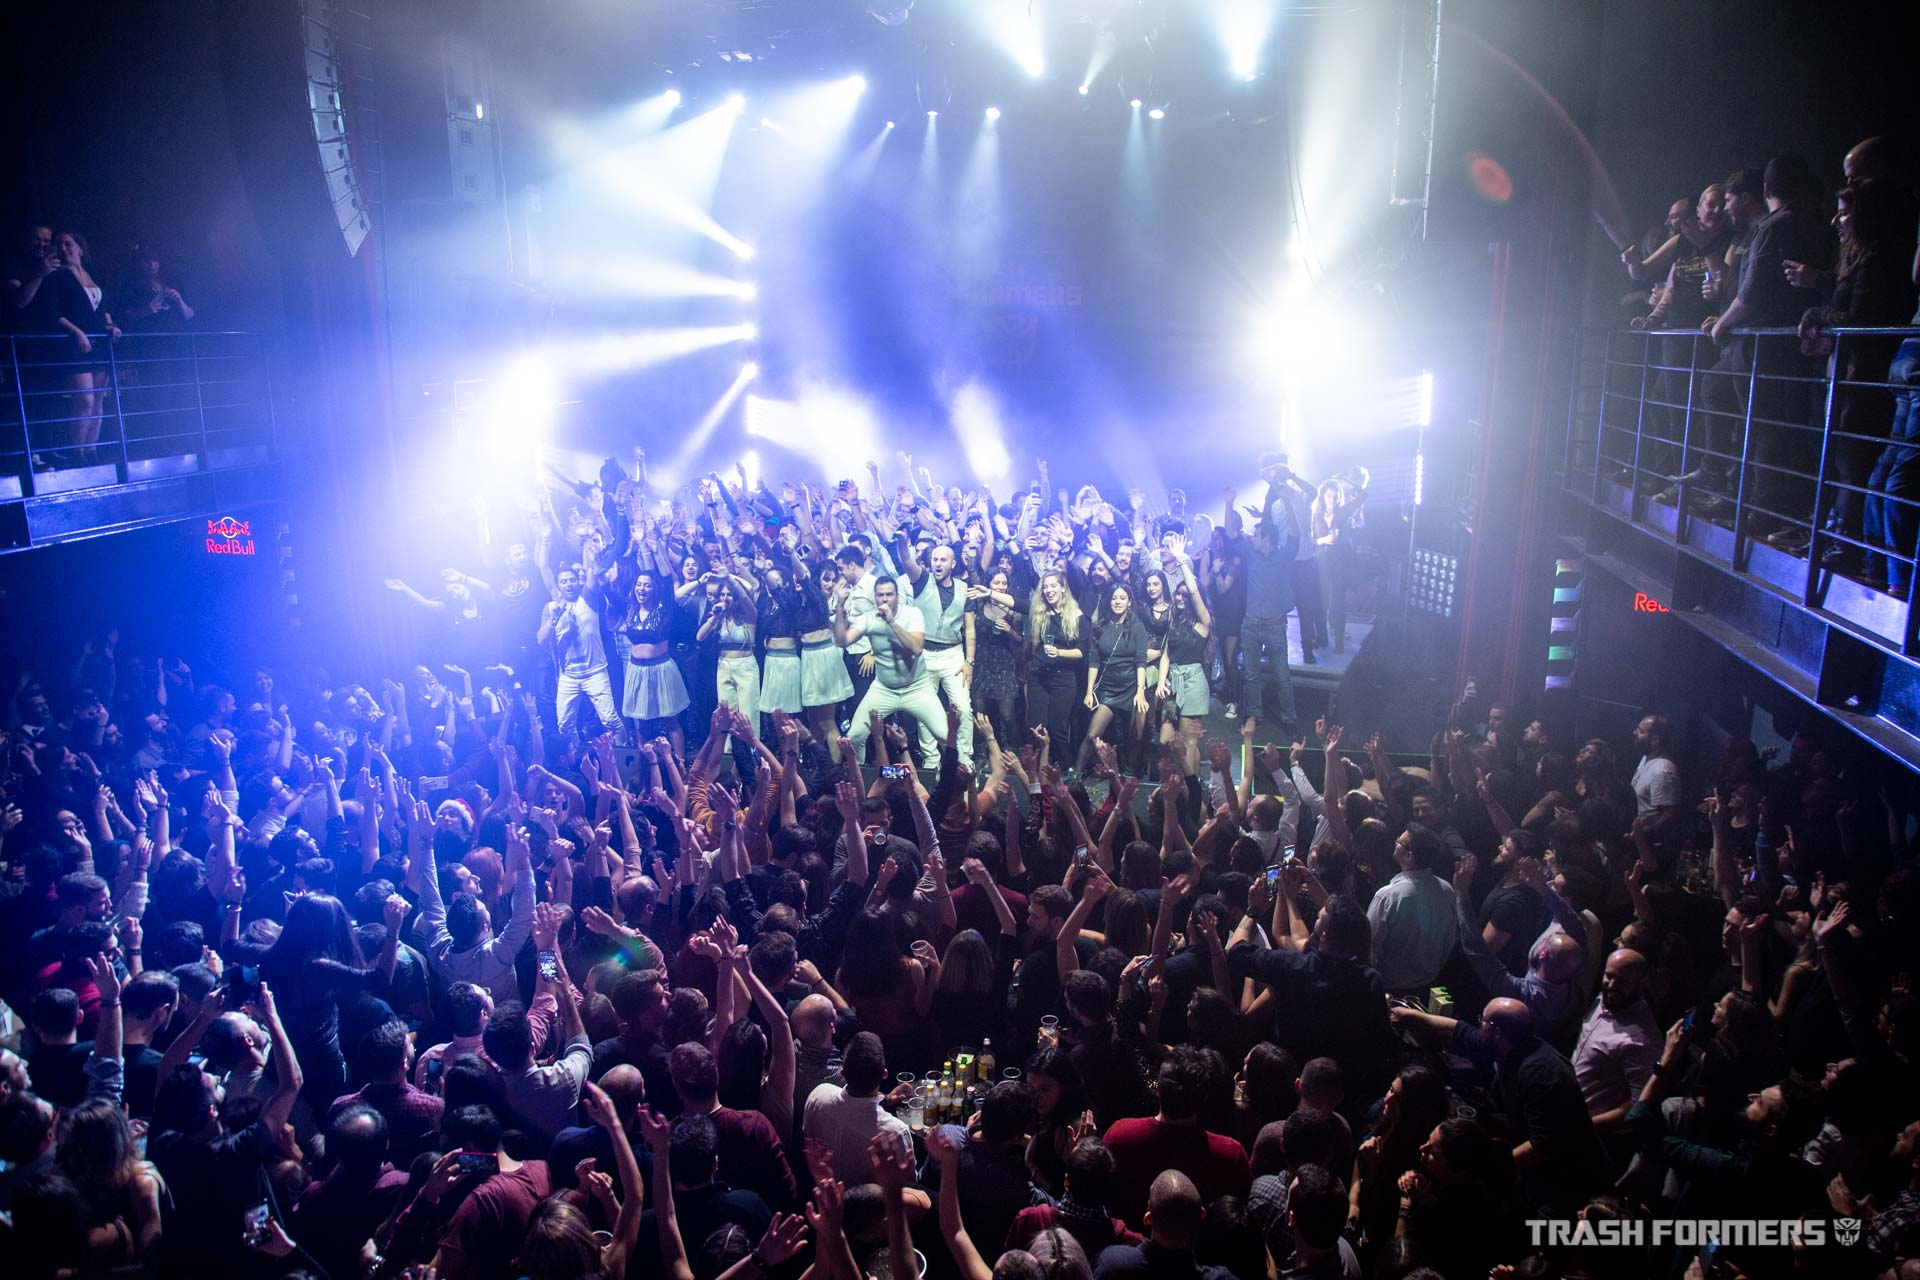 Trashformers Show in Fuzz, Athens / United we stand (on the stage)